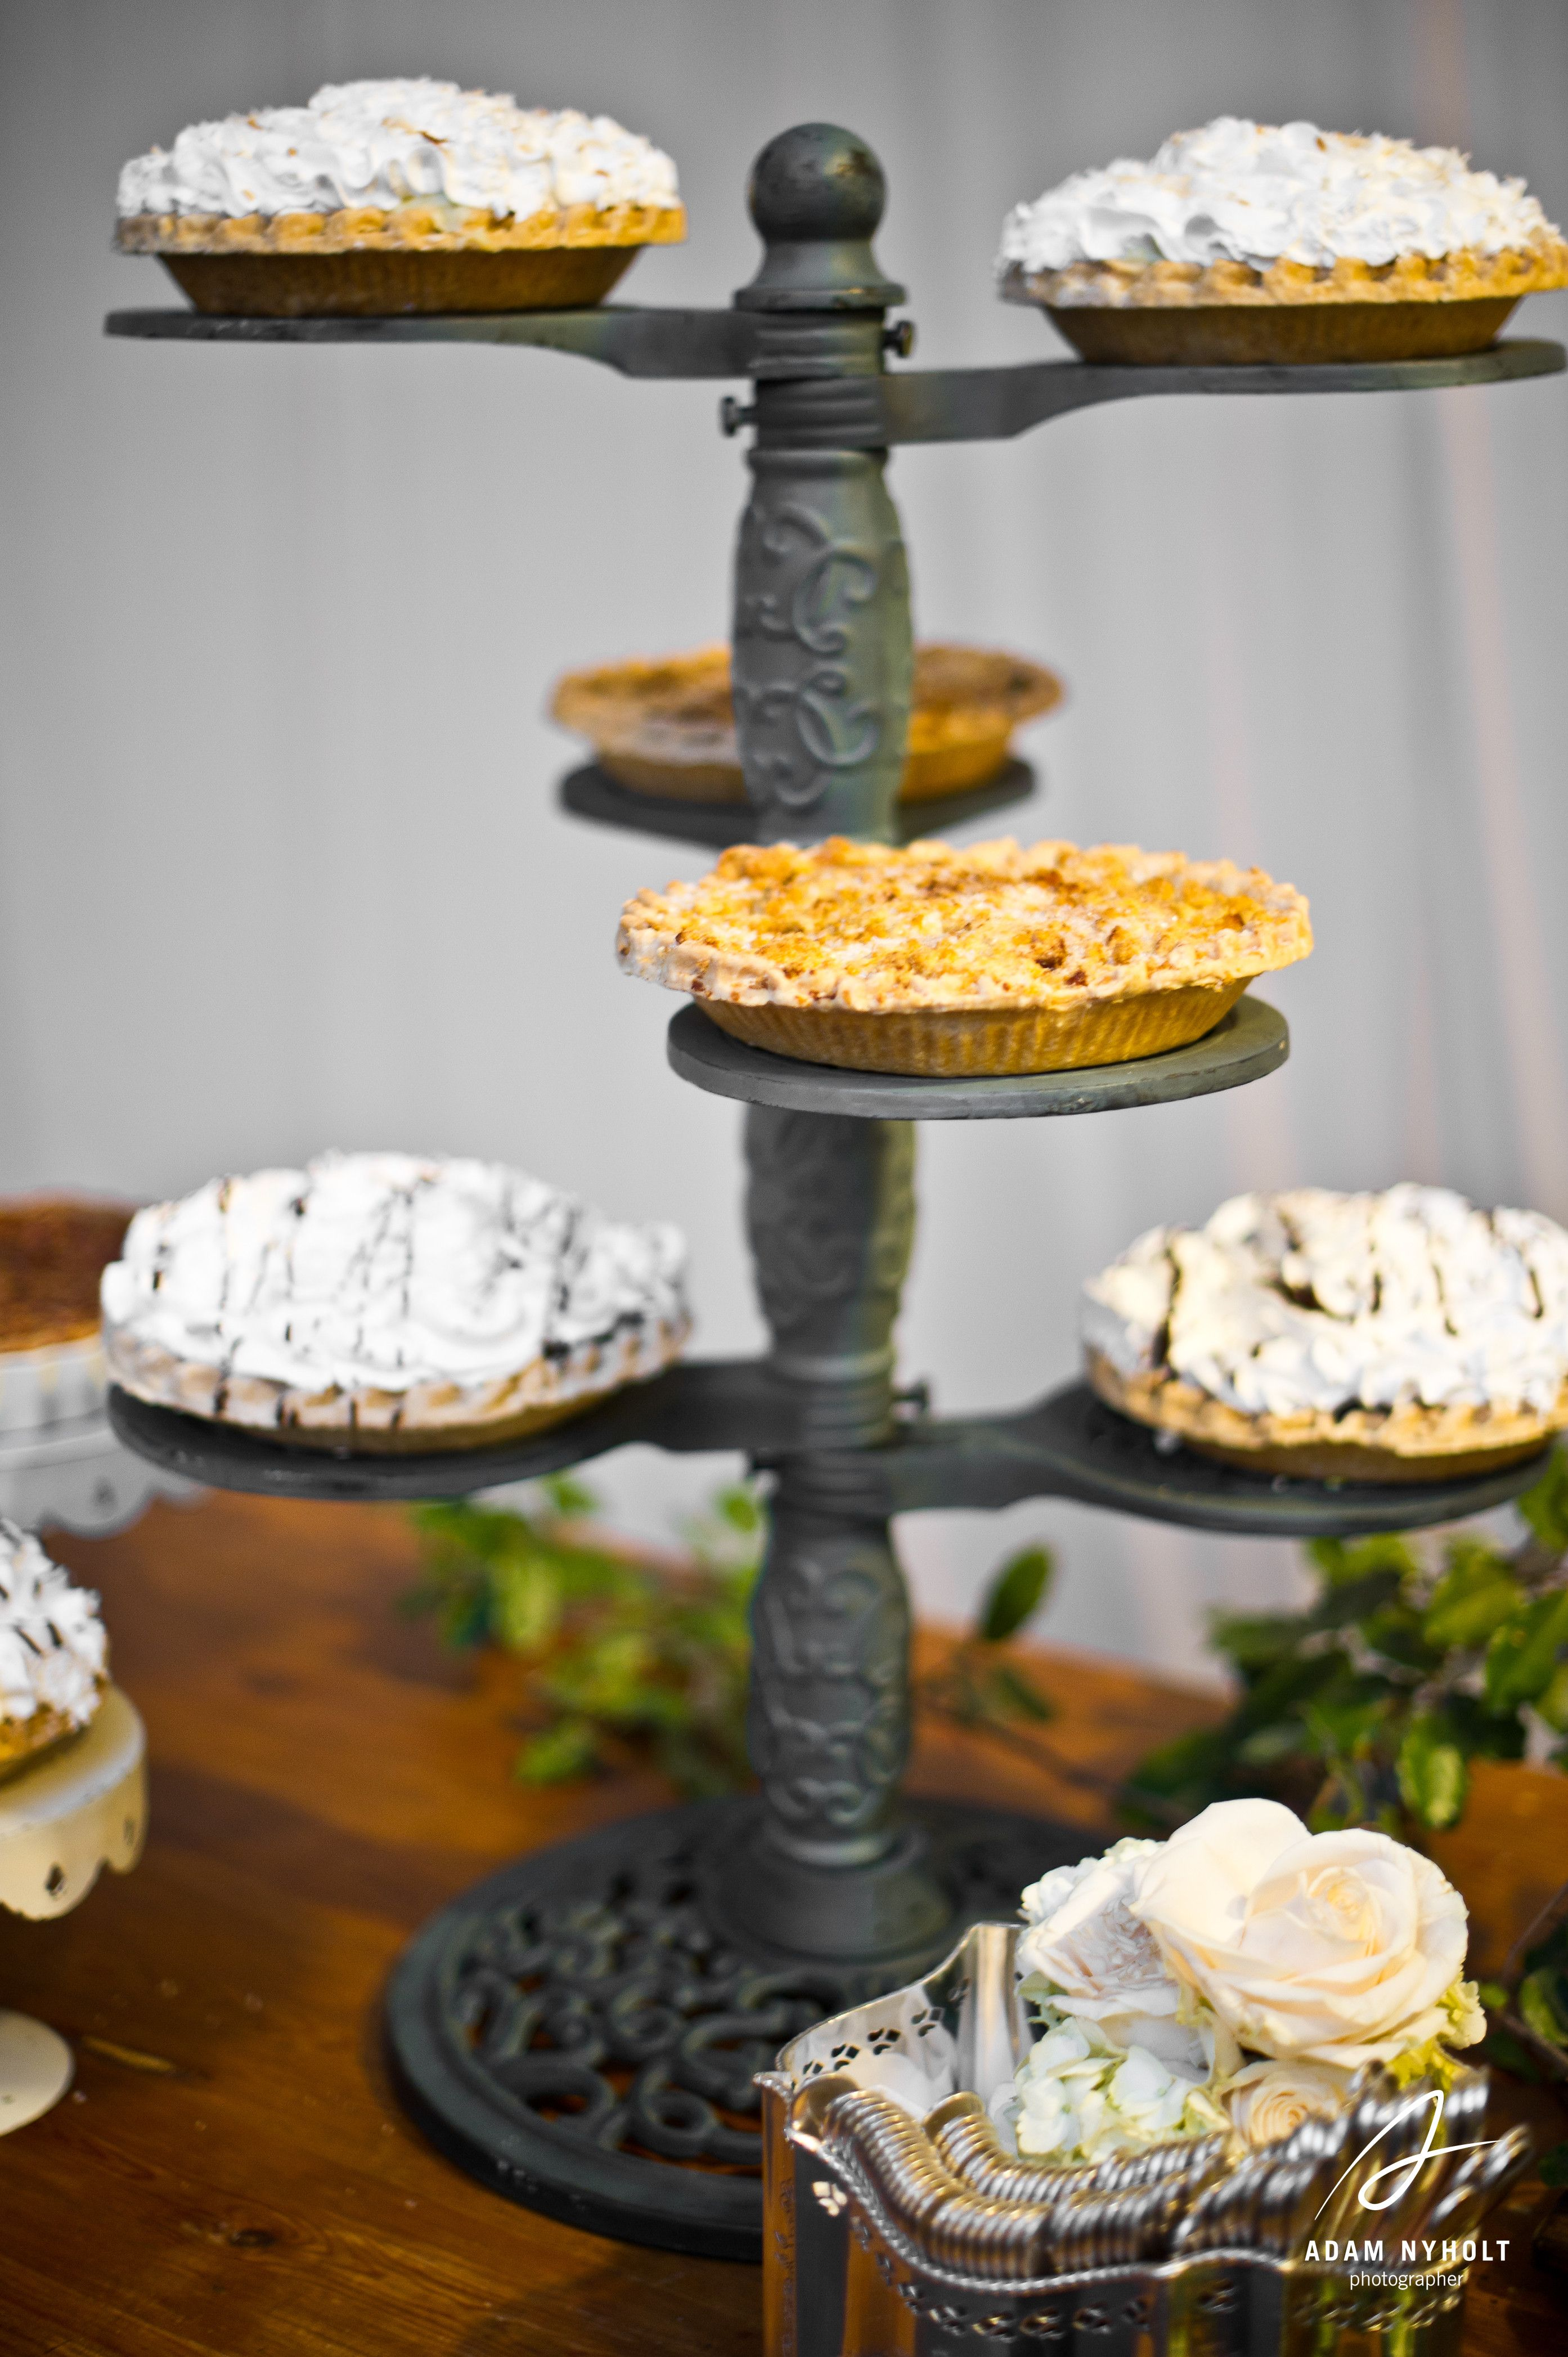 A Pie Table For The Grooms Cake Photography By Adam